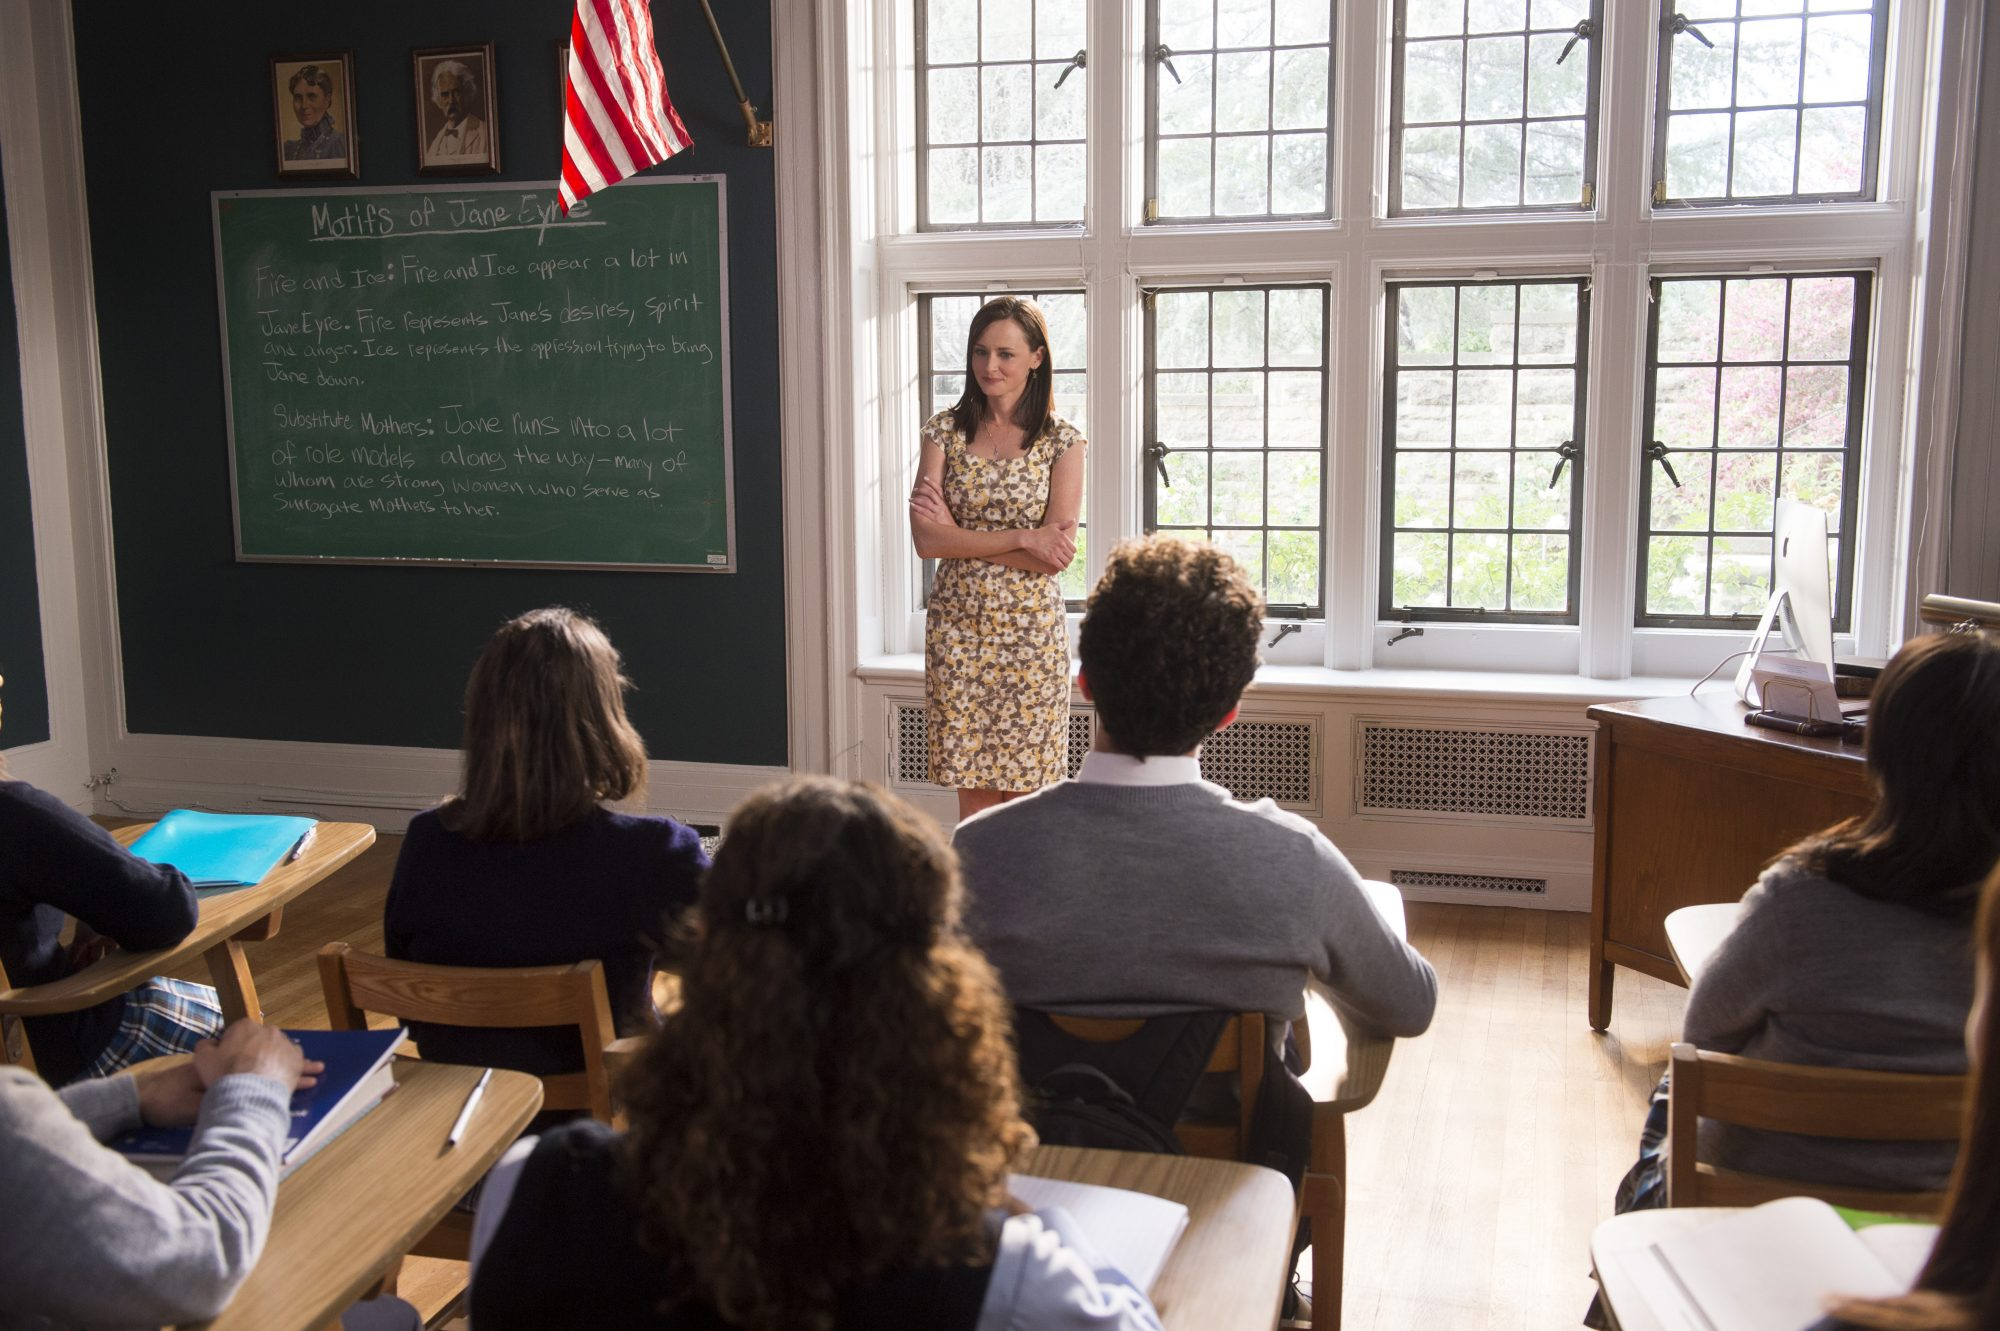 A still from the upcoming revival sees Rory teaching.